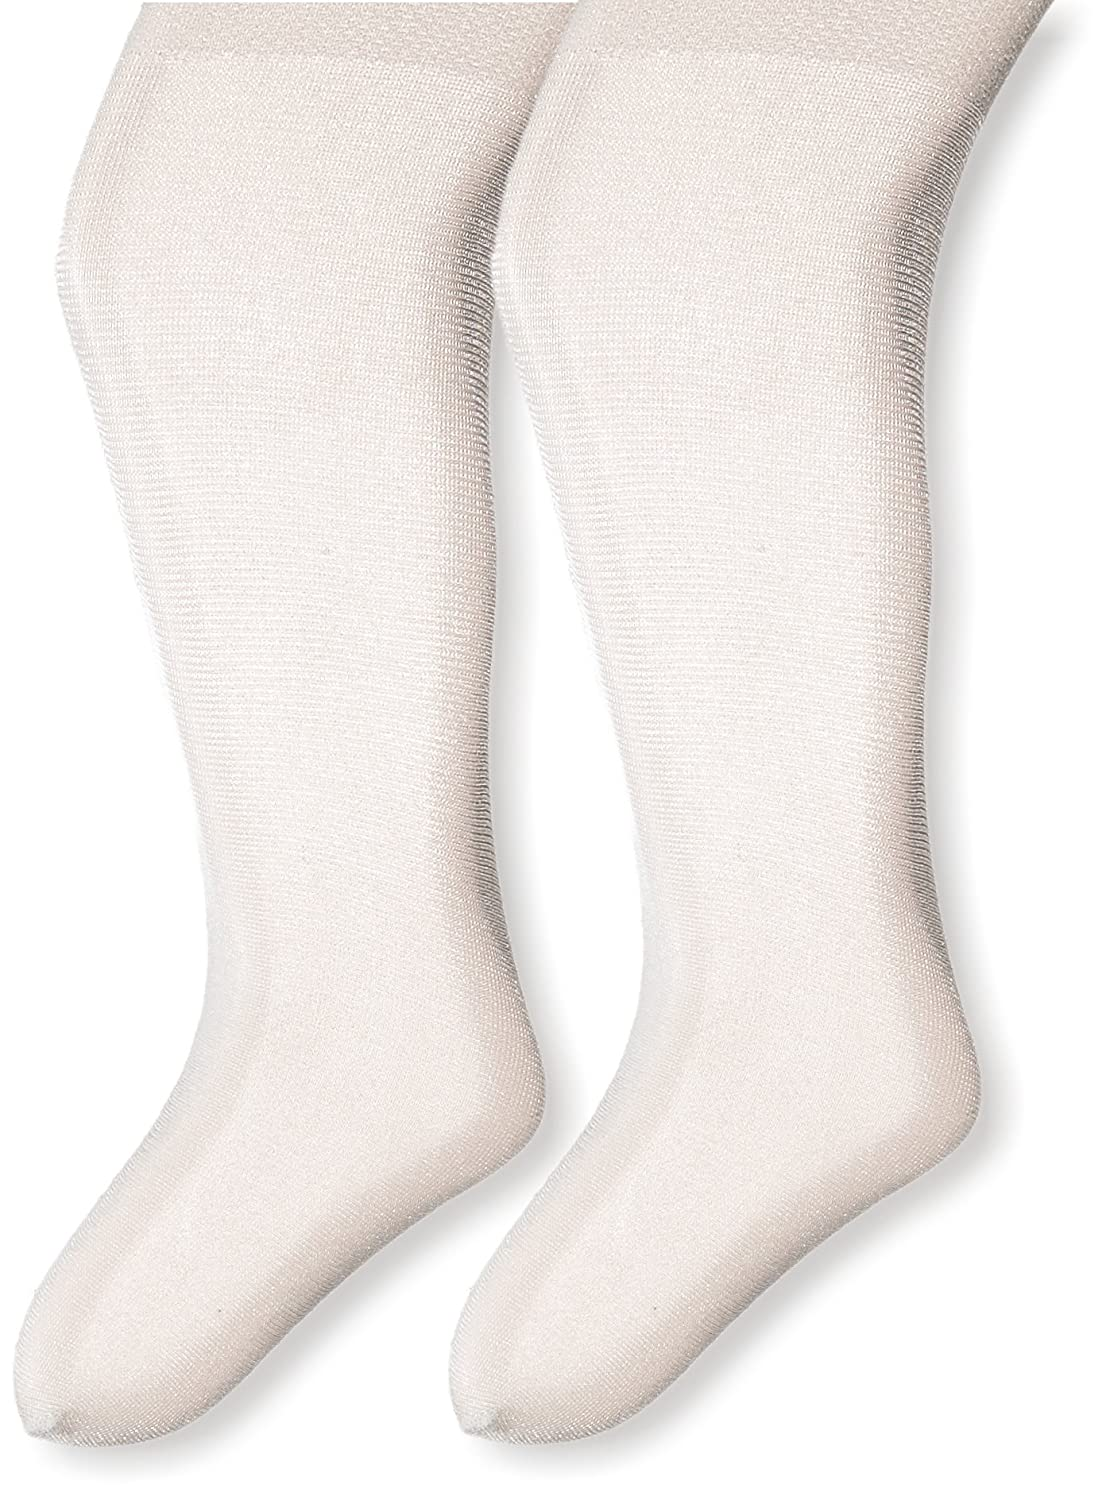 Country Kids Baby Girls' Pearl Shimmer Opaque Tights 2 Pair Pack Ivory 0-12 Months L9242